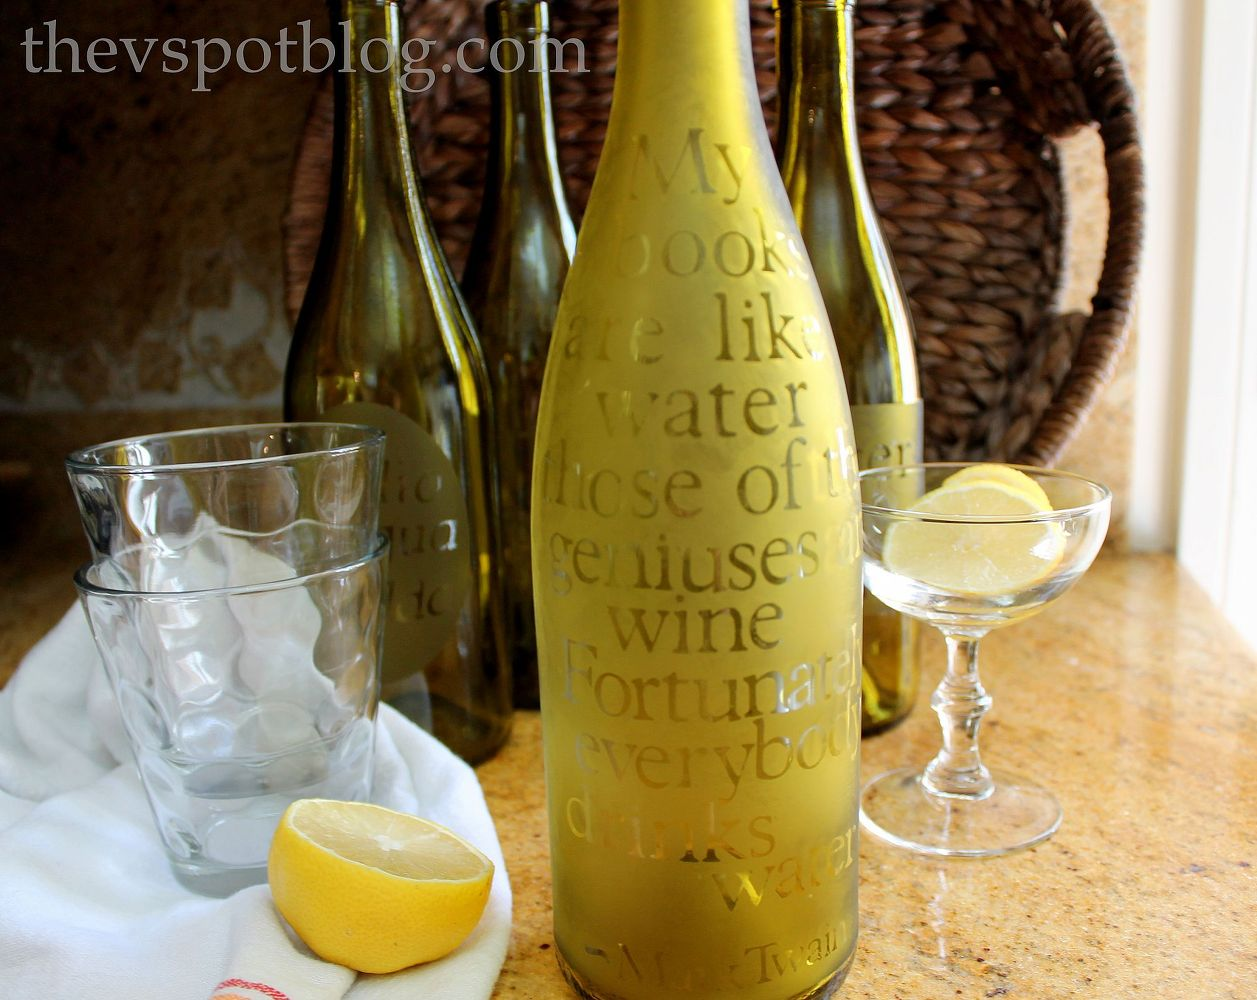 What to do with empty wine bottles - Serve Drinks On The Porch In Etched Carafes